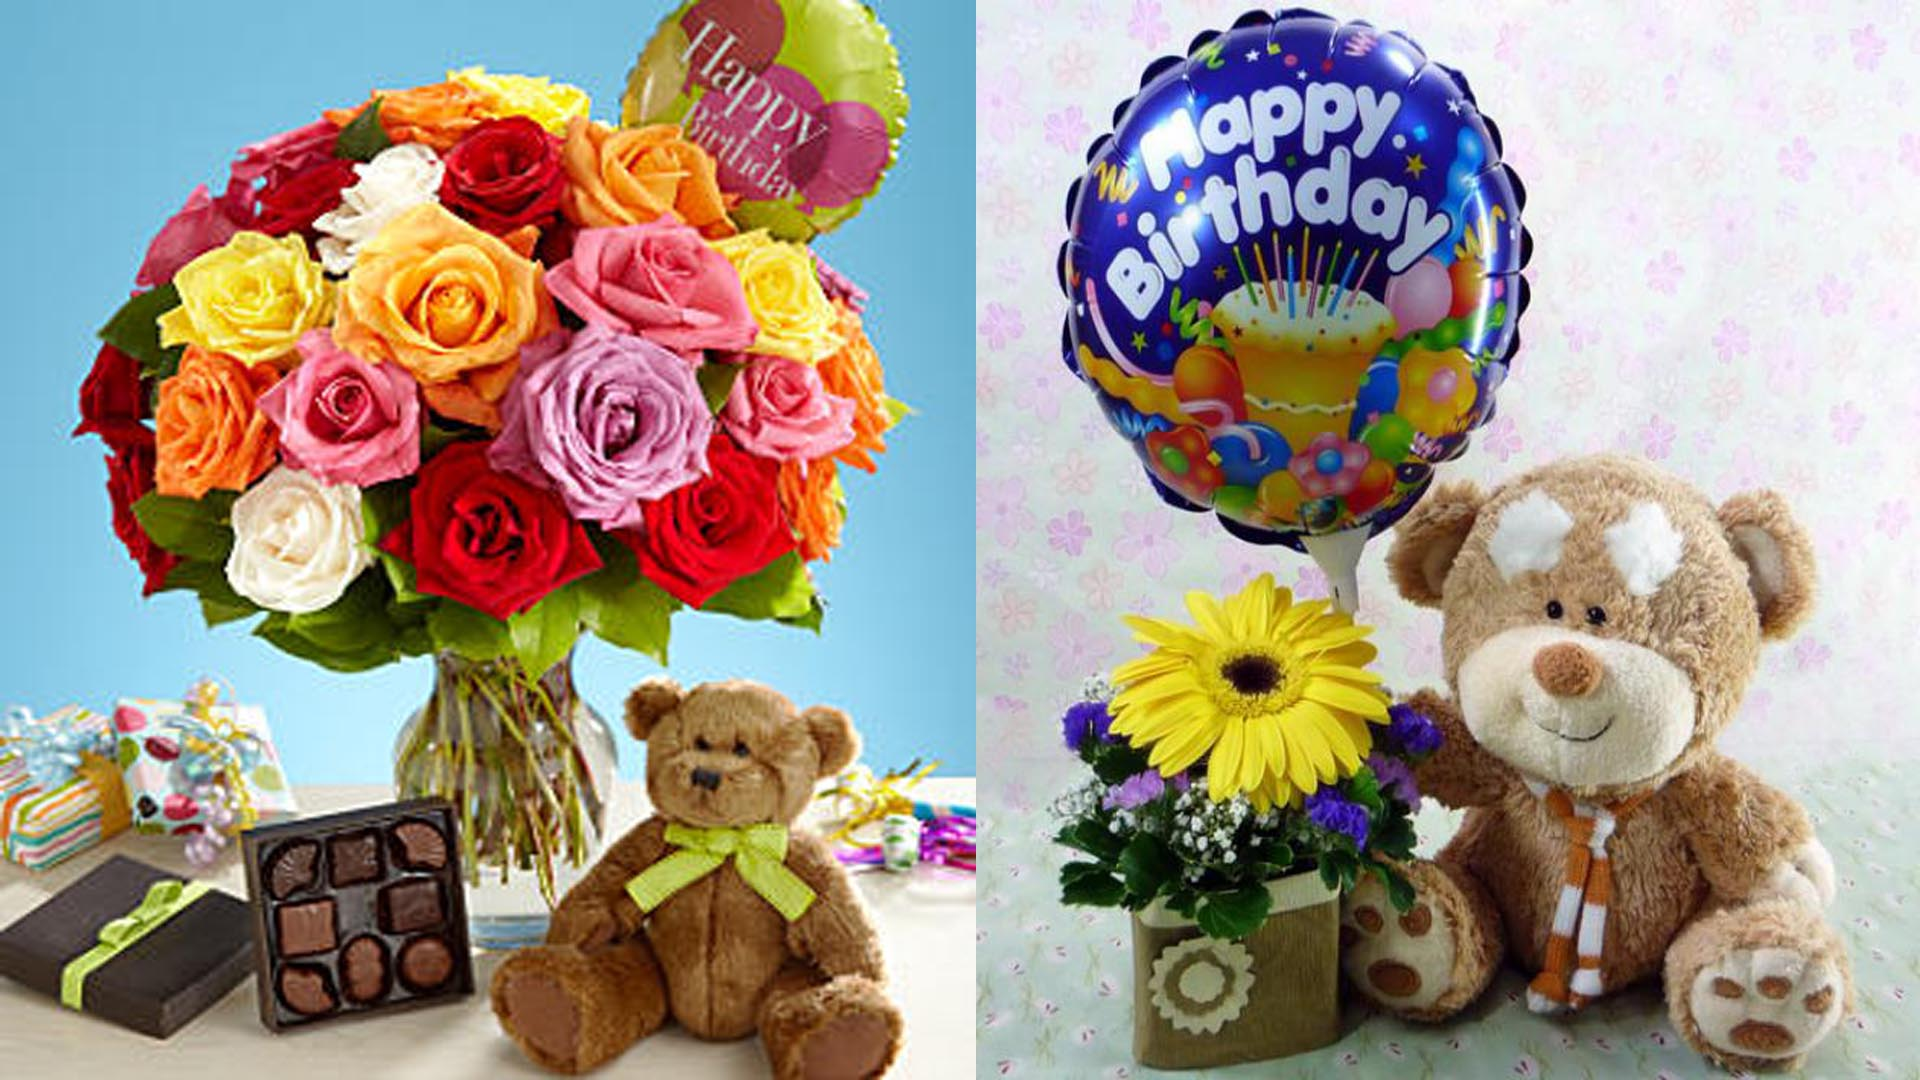 Flowers delivery in ludhiana punjab same day cakes to ludhiana flowers delivery in ludhiana punjab same day cakes to ludhiana punjab quip negle Choice Image